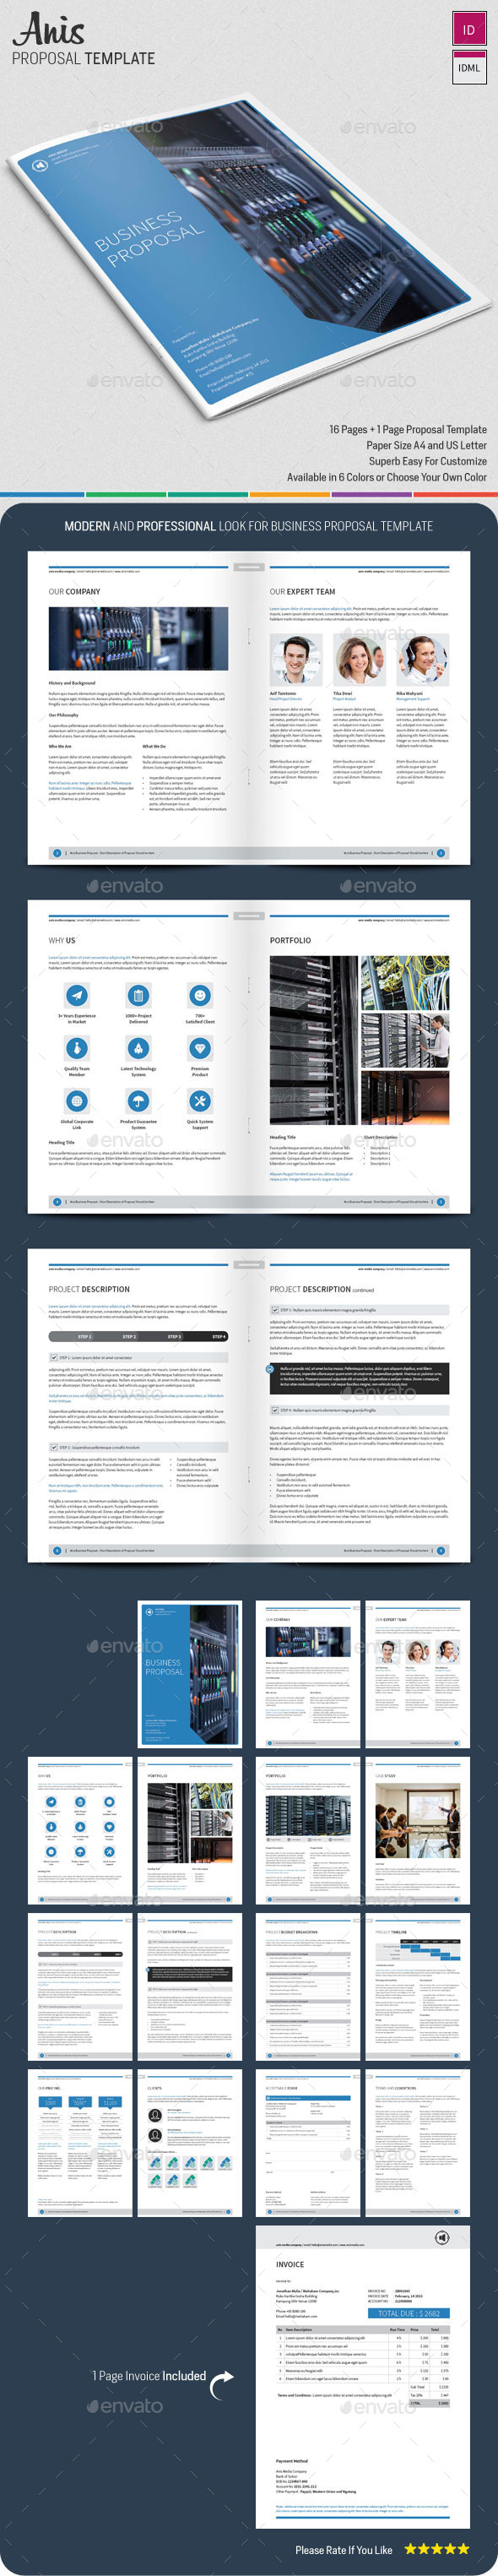 GraphicRiver Anis Proposal Template 10136440